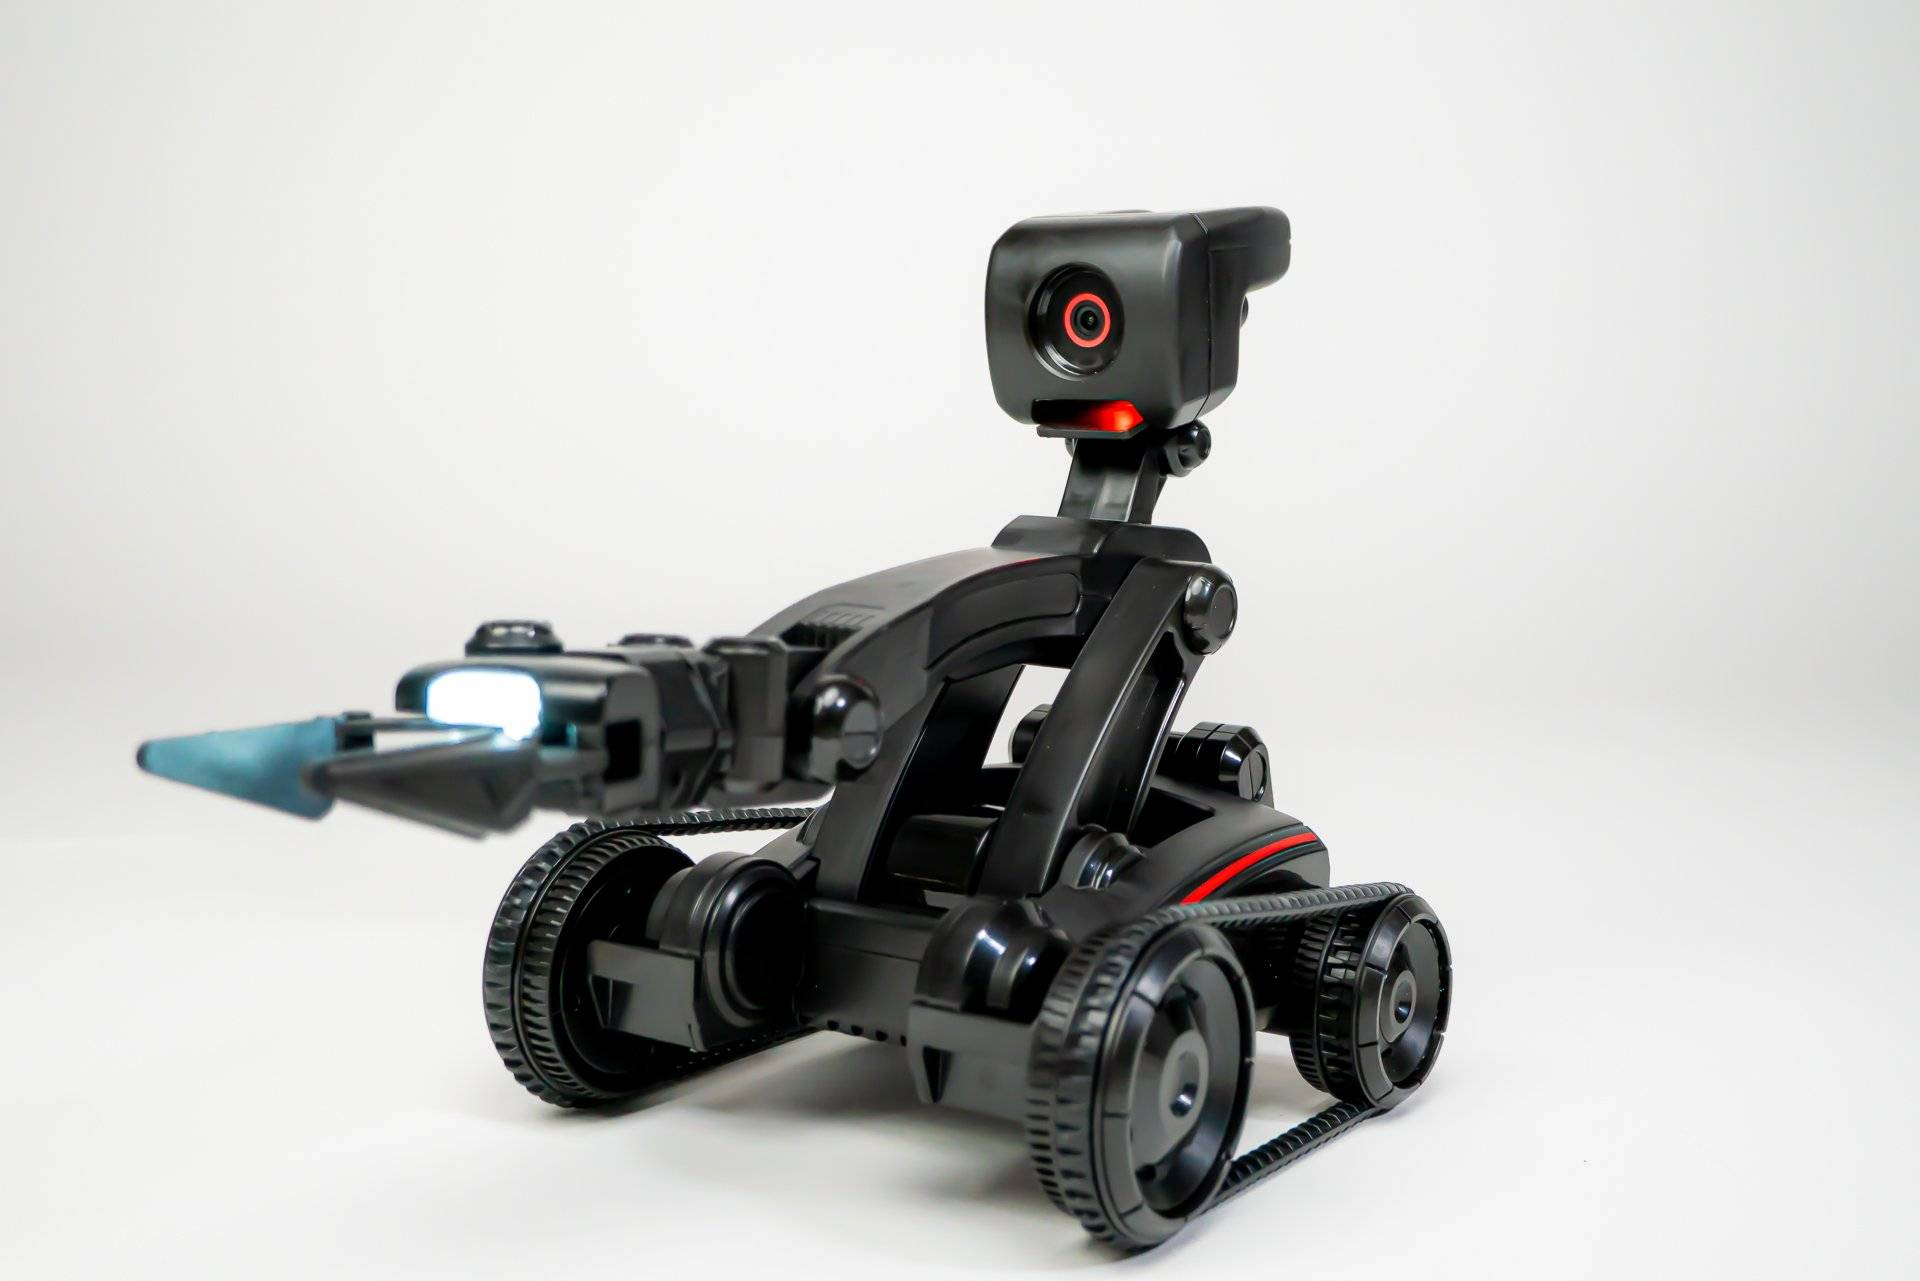 Nabot AI posing with arm open and LED on